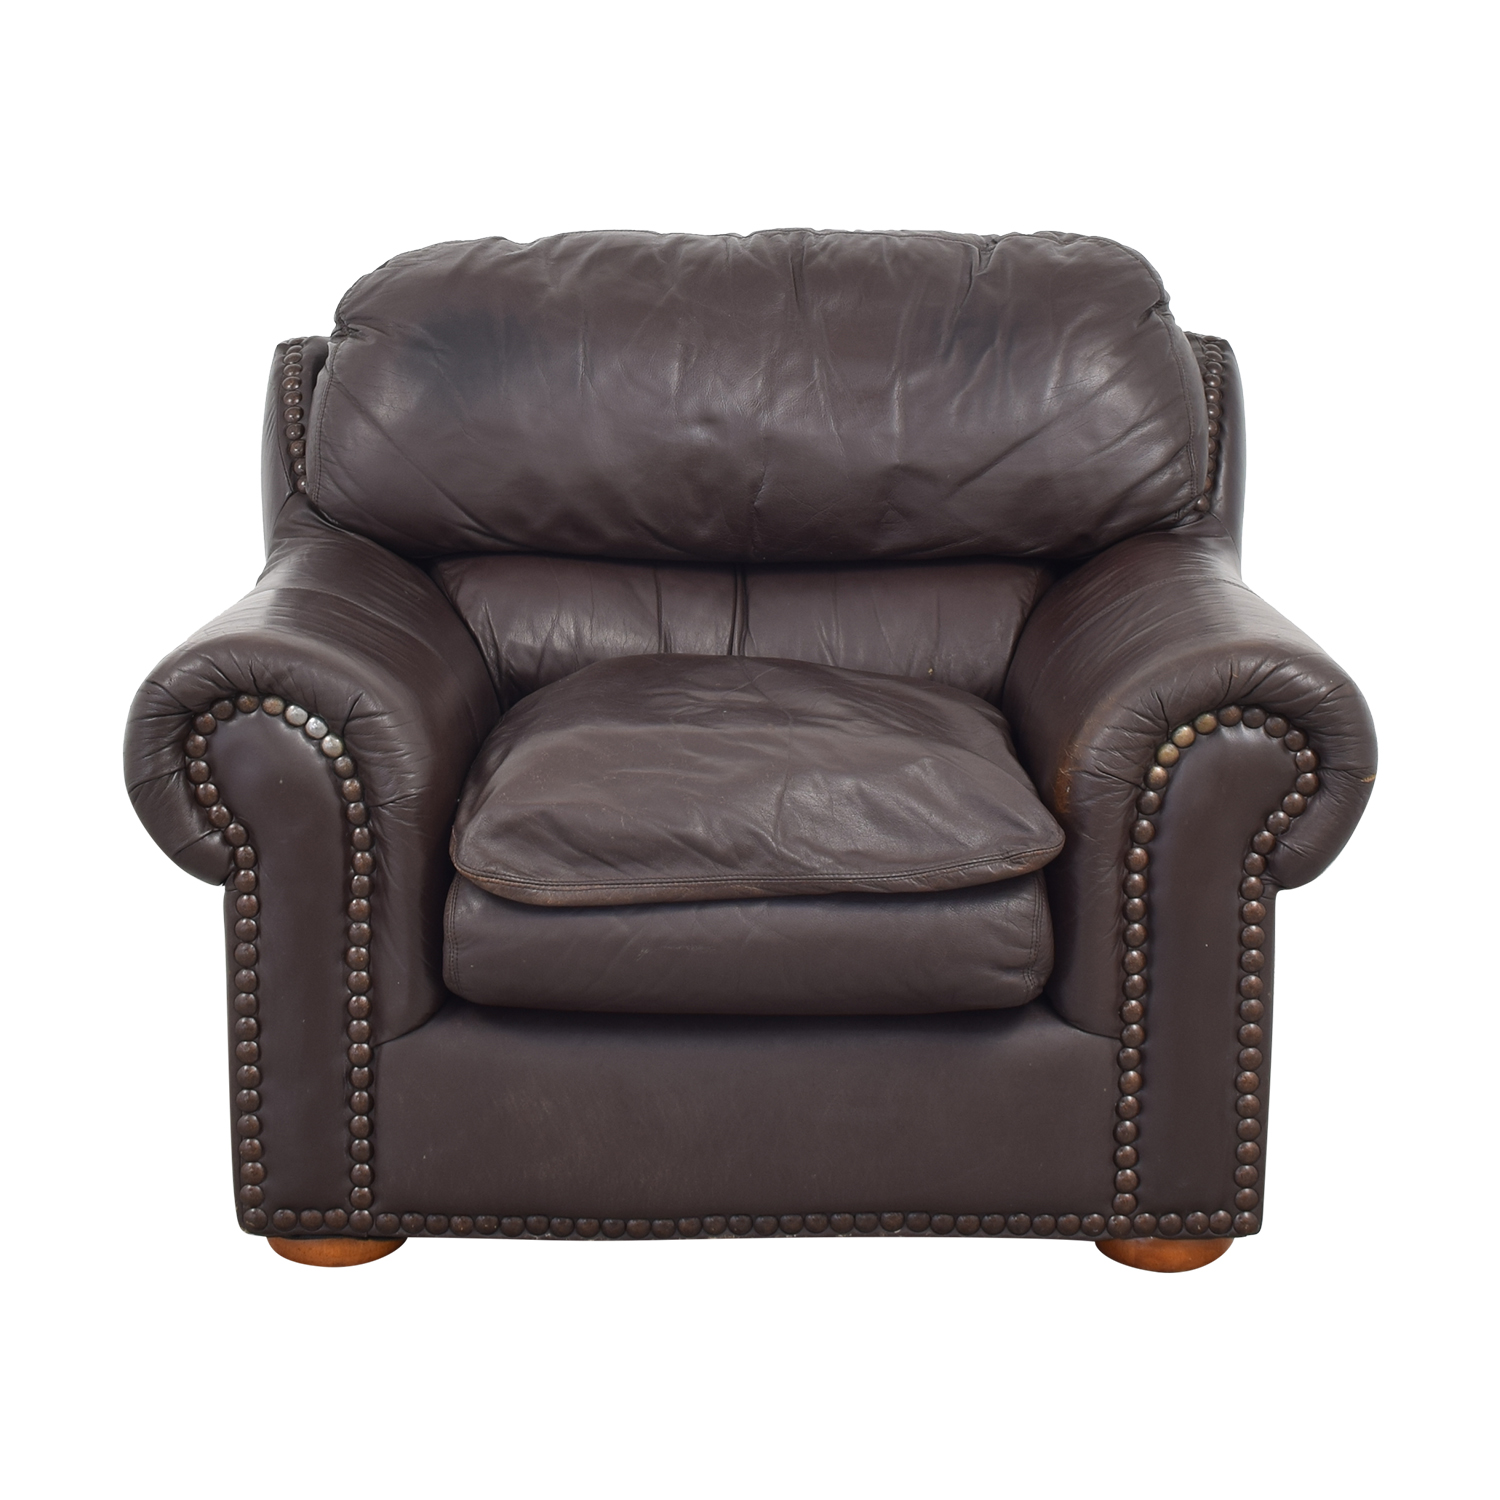 Viewpoint Accent Chair sale